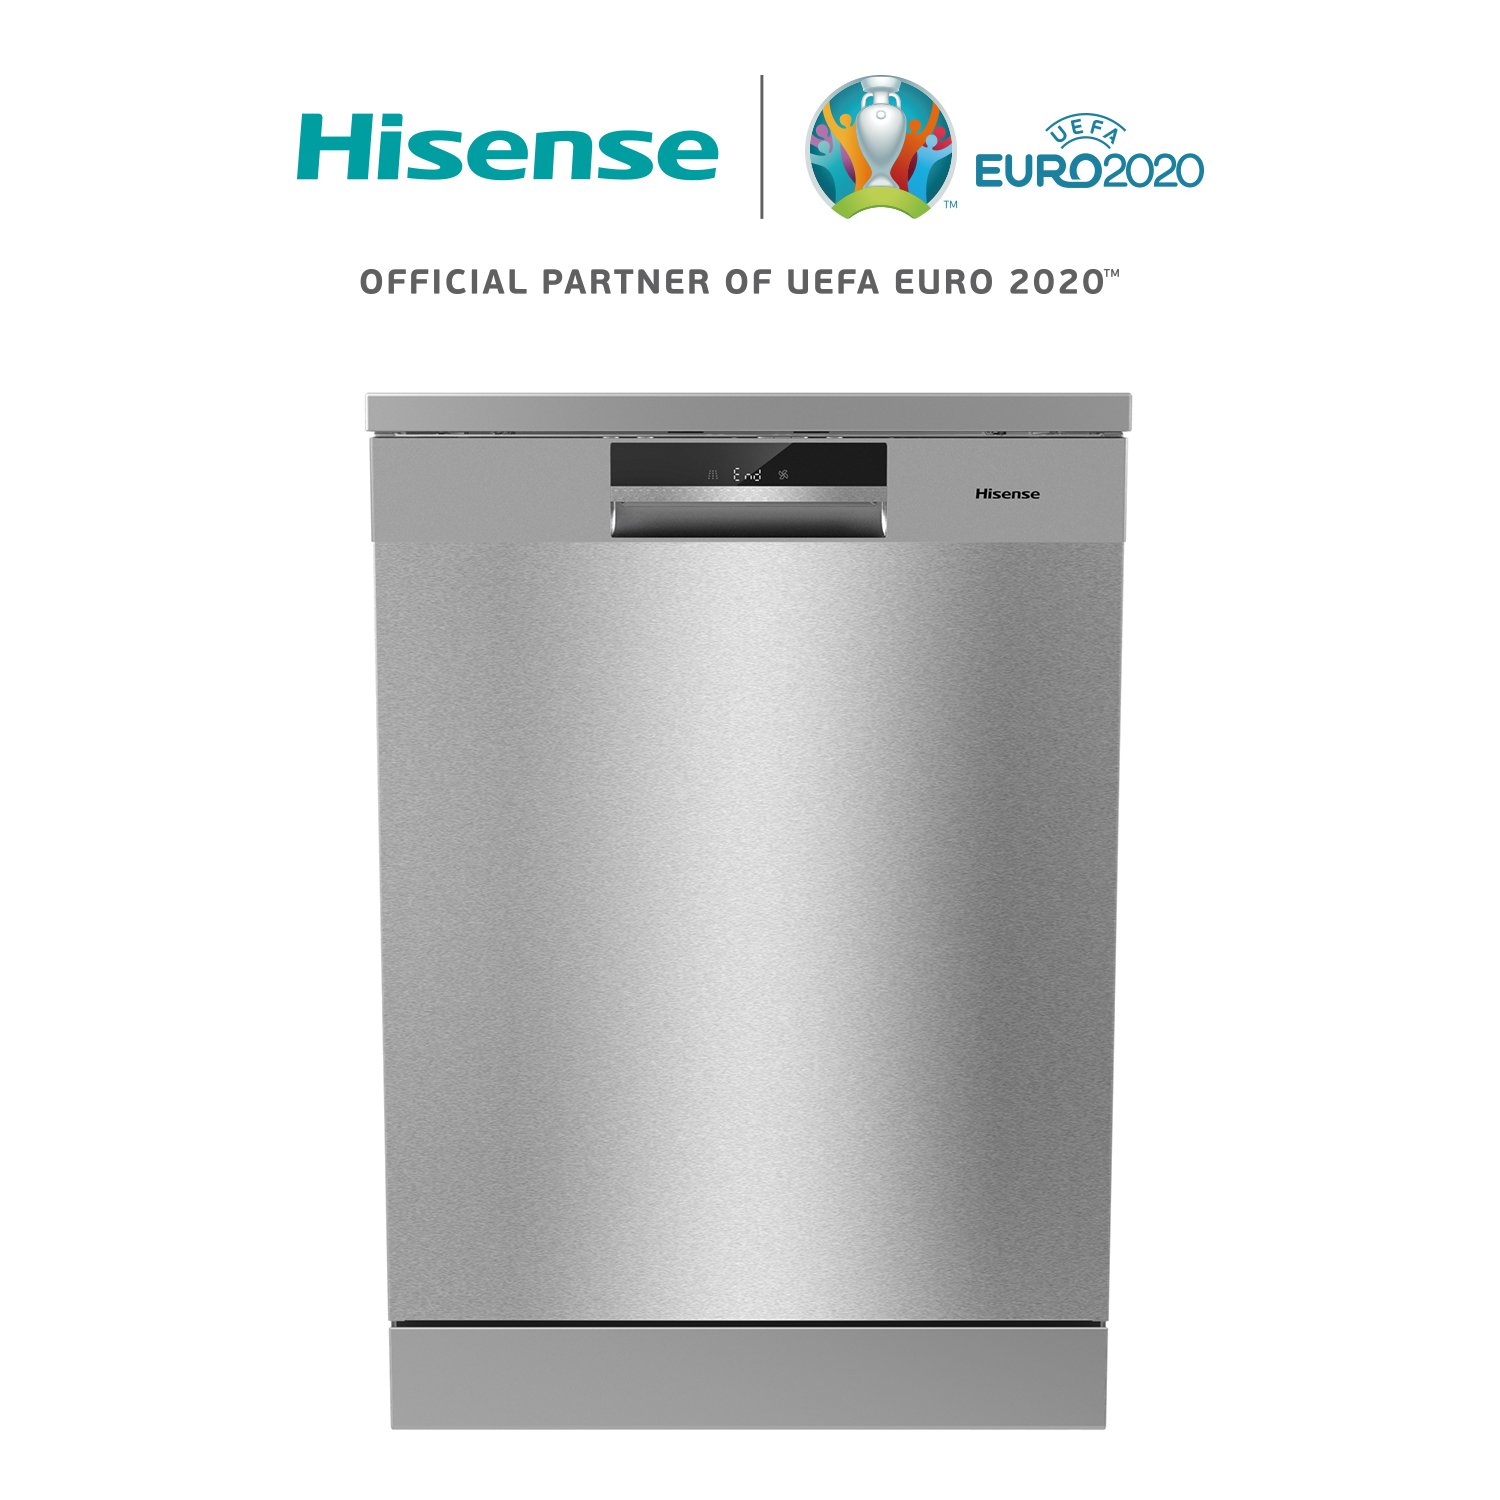 Hisense HS6130X Dishwasher, A Class +++, 3 Baskets, 60 × 84,8 × 59,6 Cm, 16 Cutlery Quick Wash, Stainless Steel Inner